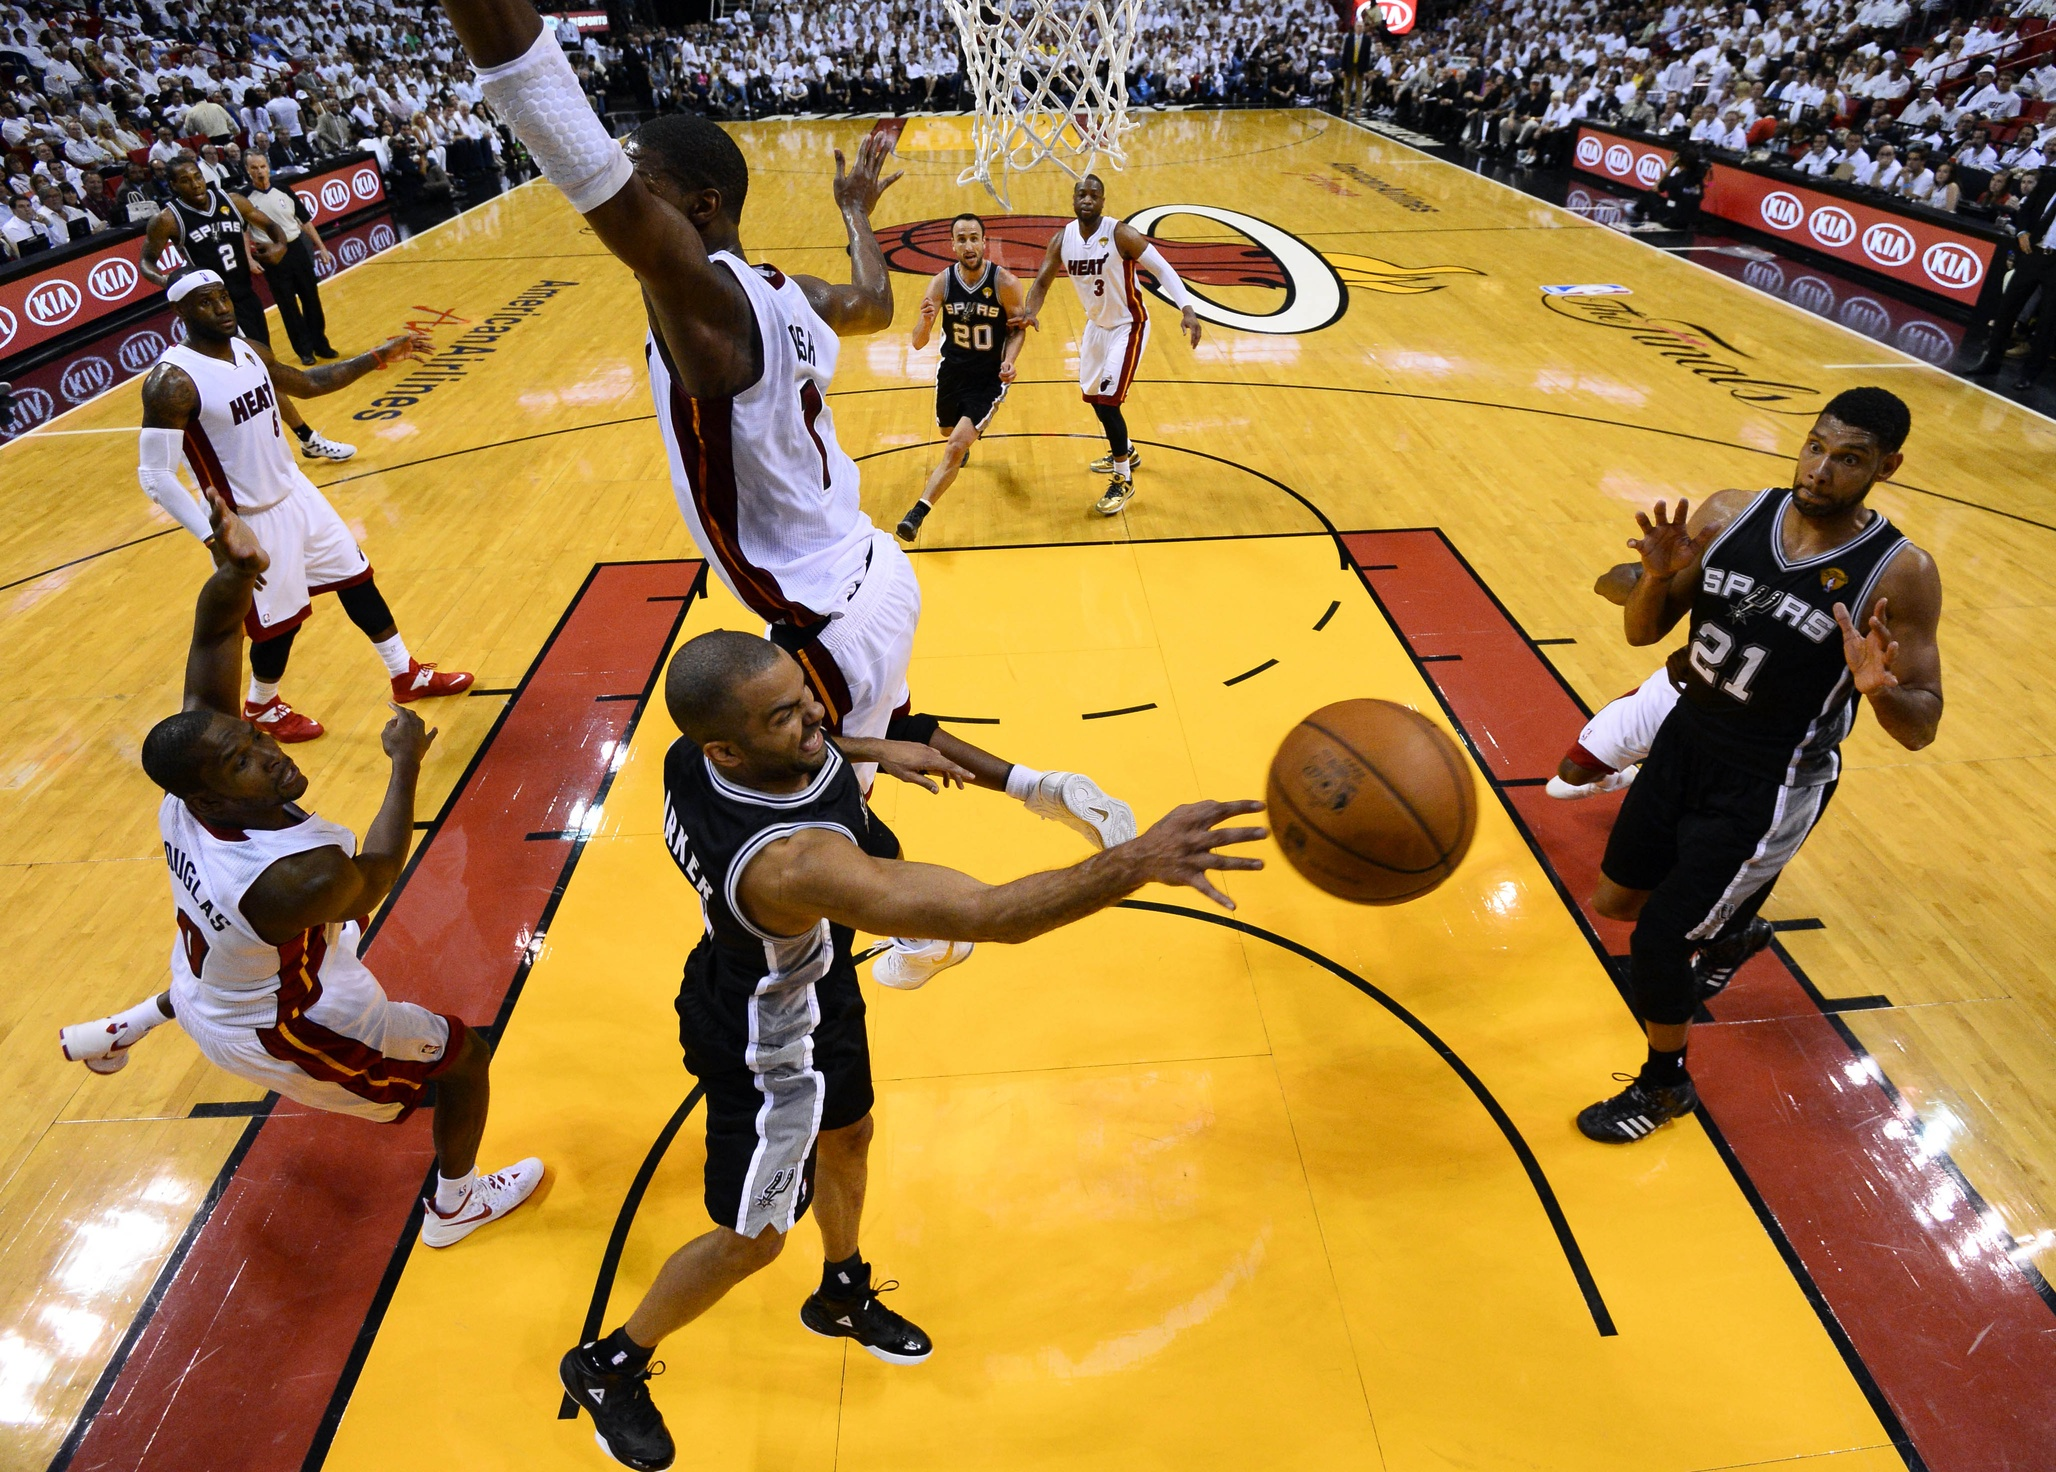 If you're an opponent, this  is what the Spurs do to your defense. If you're a fan of great basketball (and not a Heat partisan), the Spurs make your insides tingle with ecstasy when you see tic-tac-toe passing such as this.